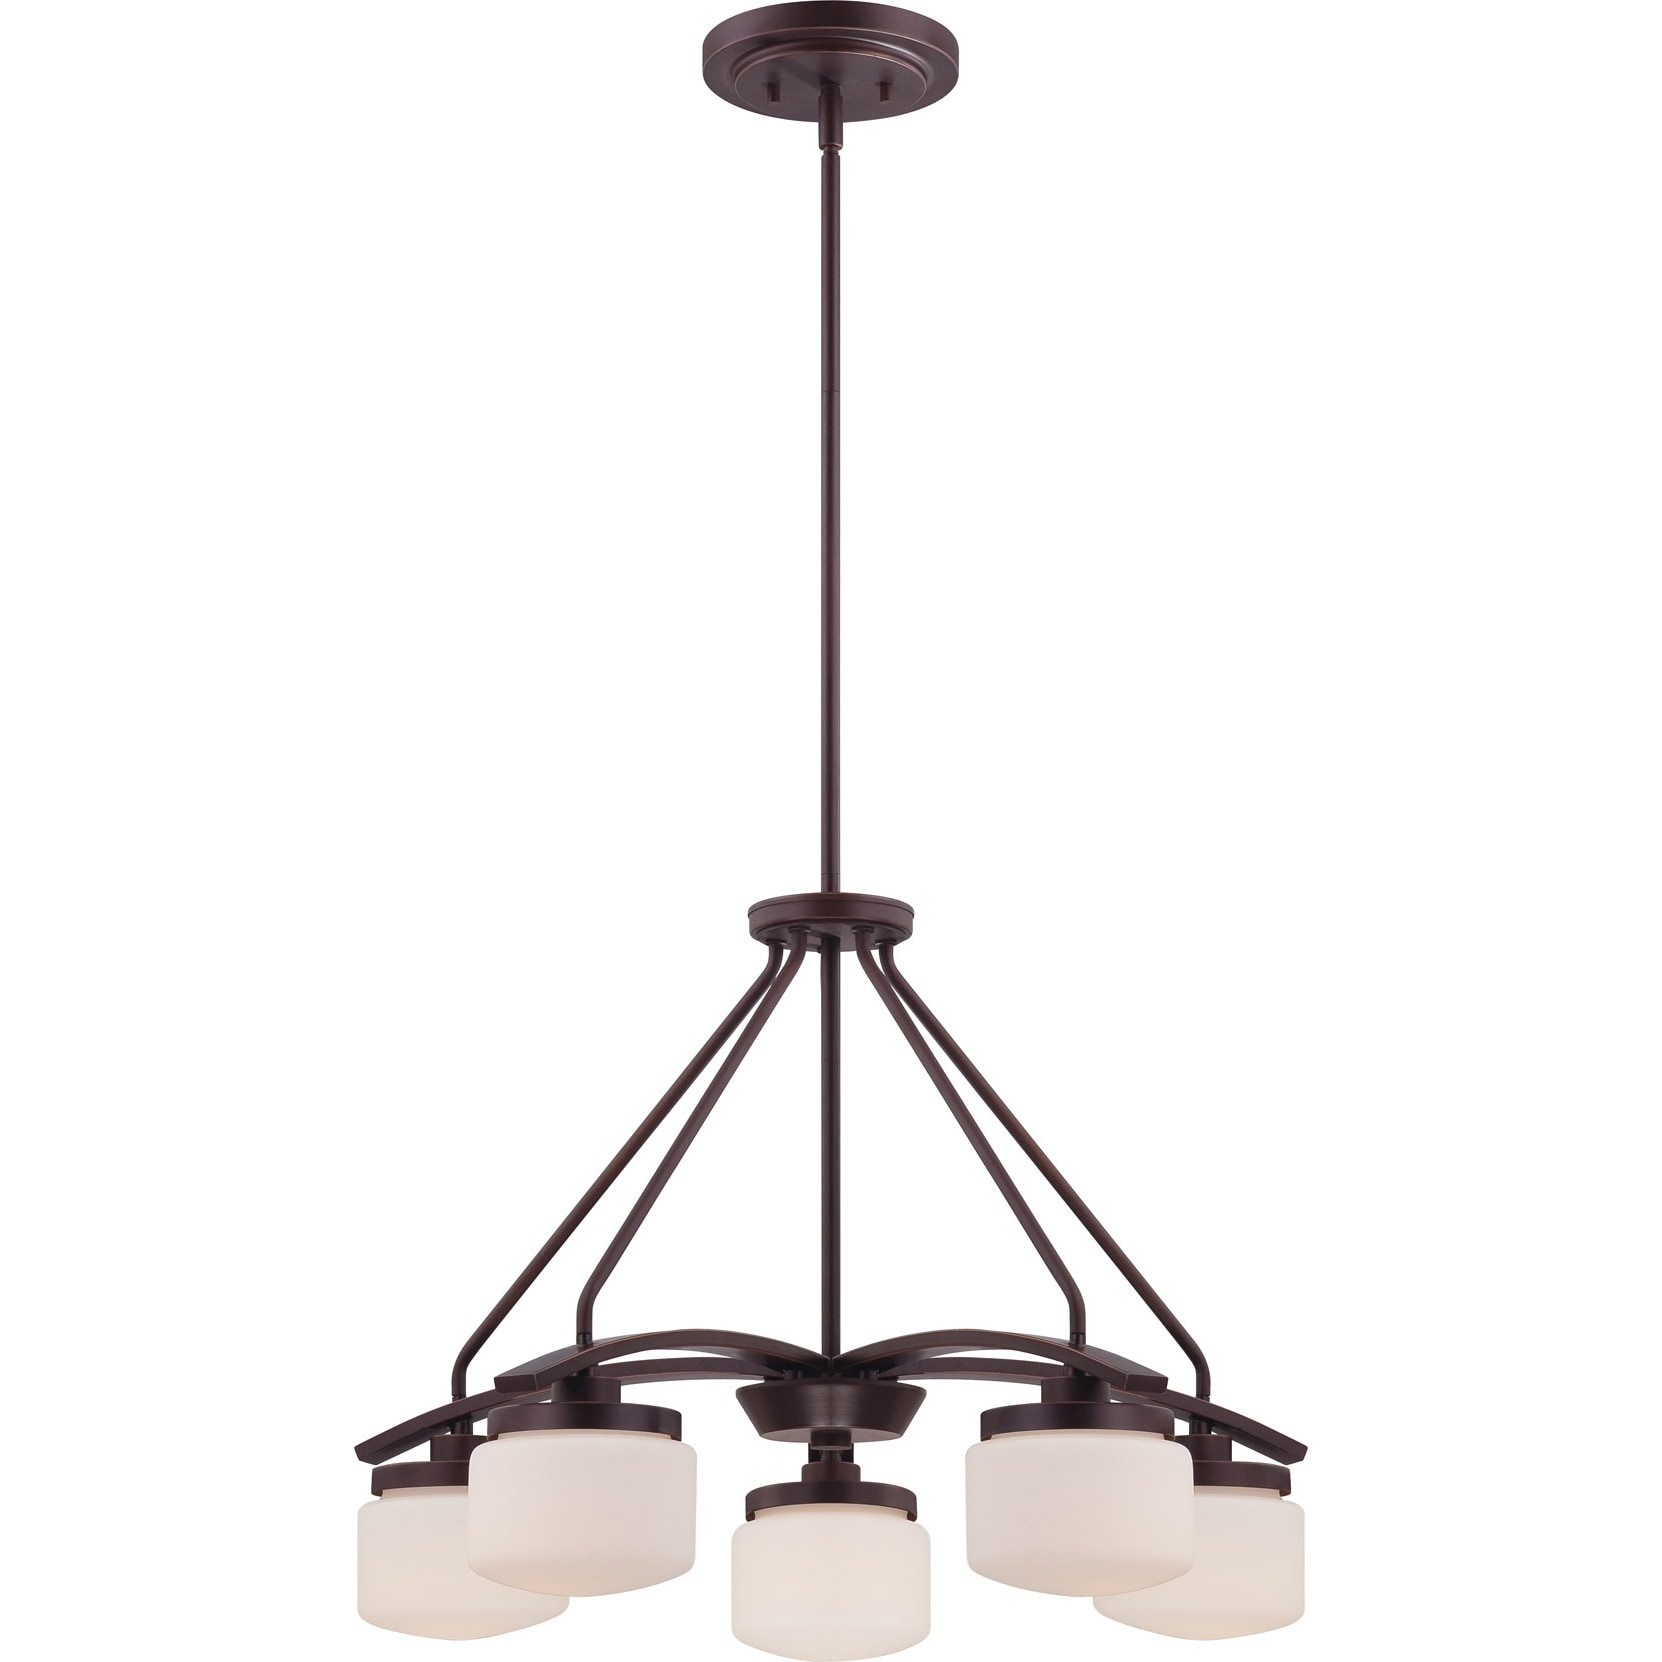 Nuvo Austin 5-light Russet Bronze Chandelier